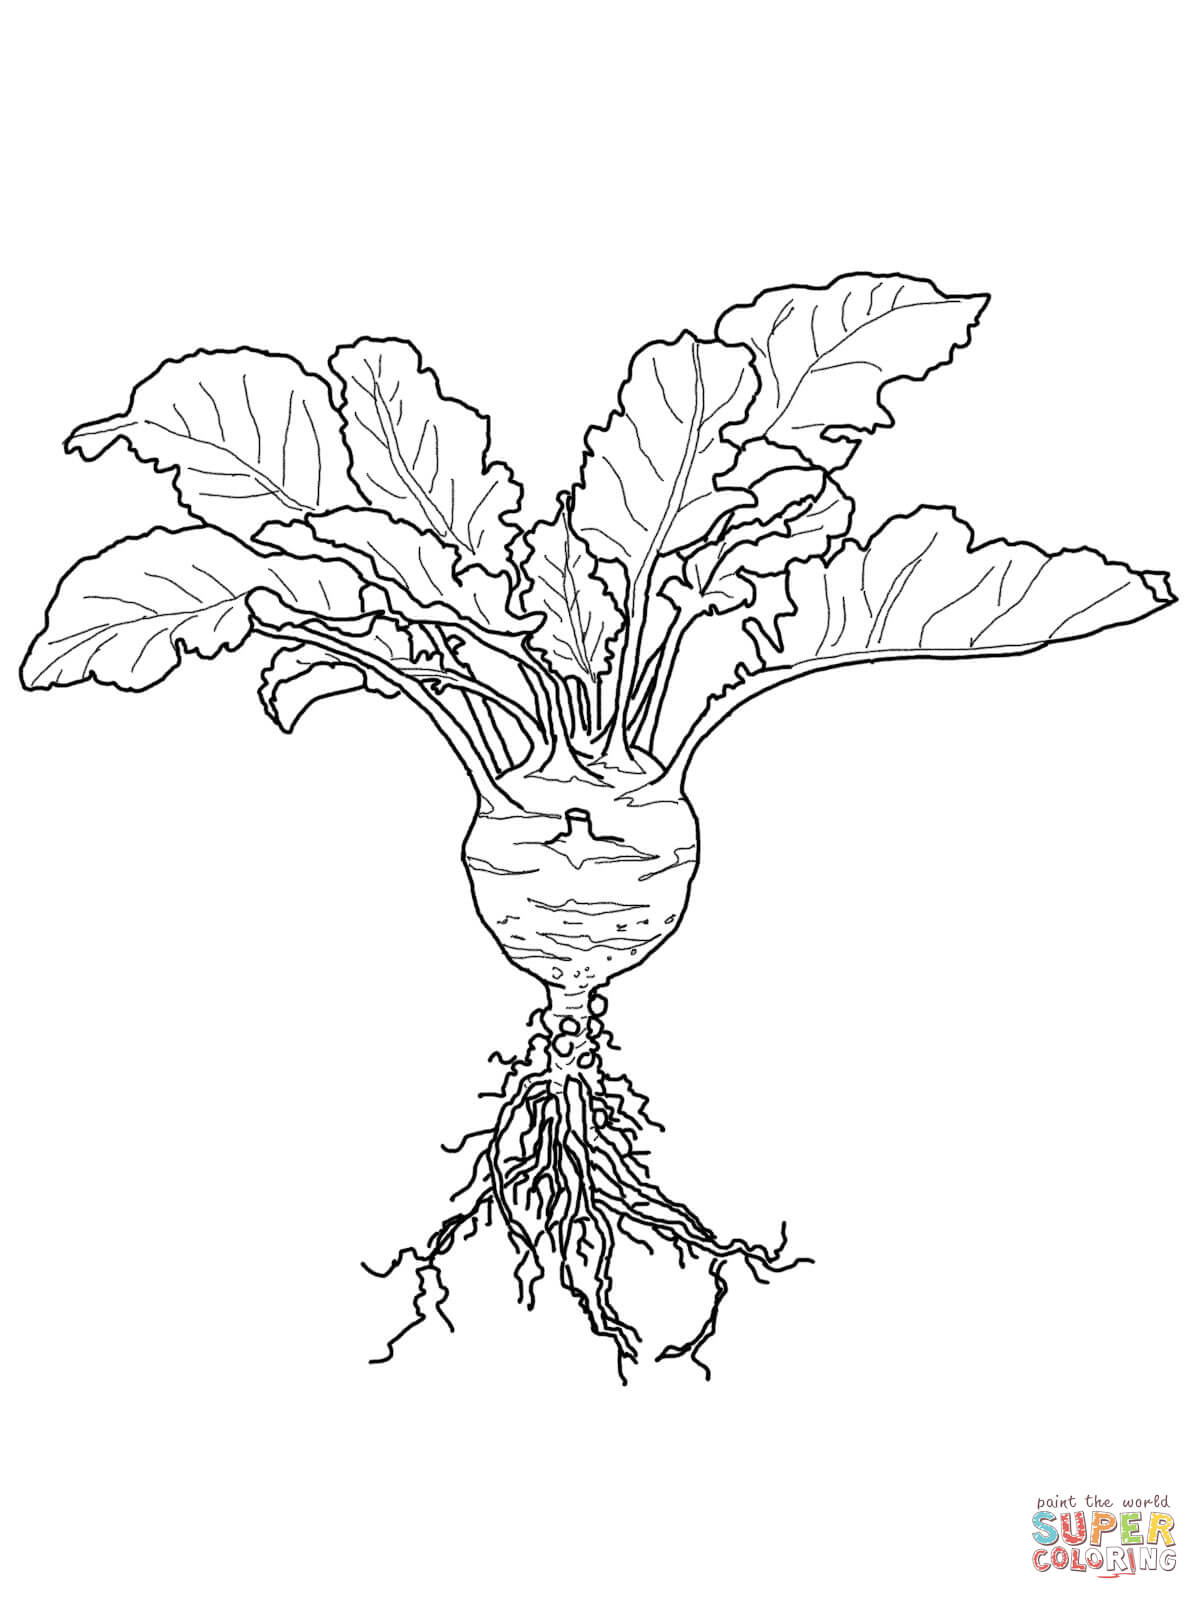 Underground Plant Roots Drawing Sketch Coloring Page